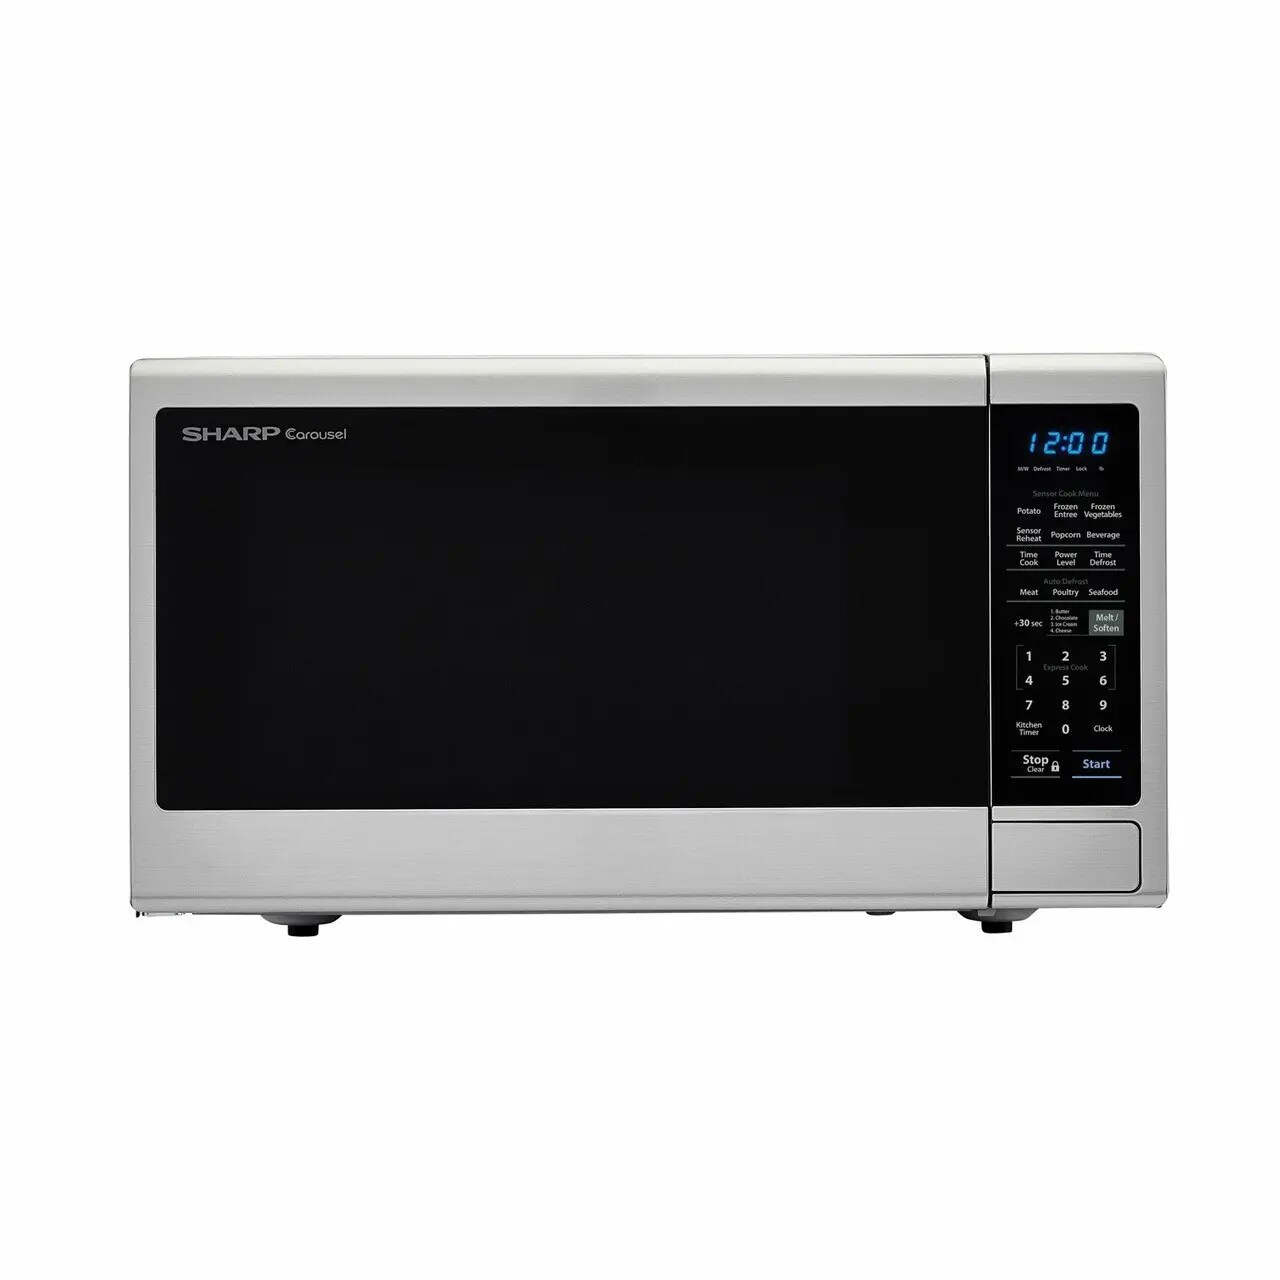 Smc1443cm Sharp Appliances 1 4 Cu Ft 1000w Sharp Black Carousel Countertop Microwave Oven Ca Wilson Company